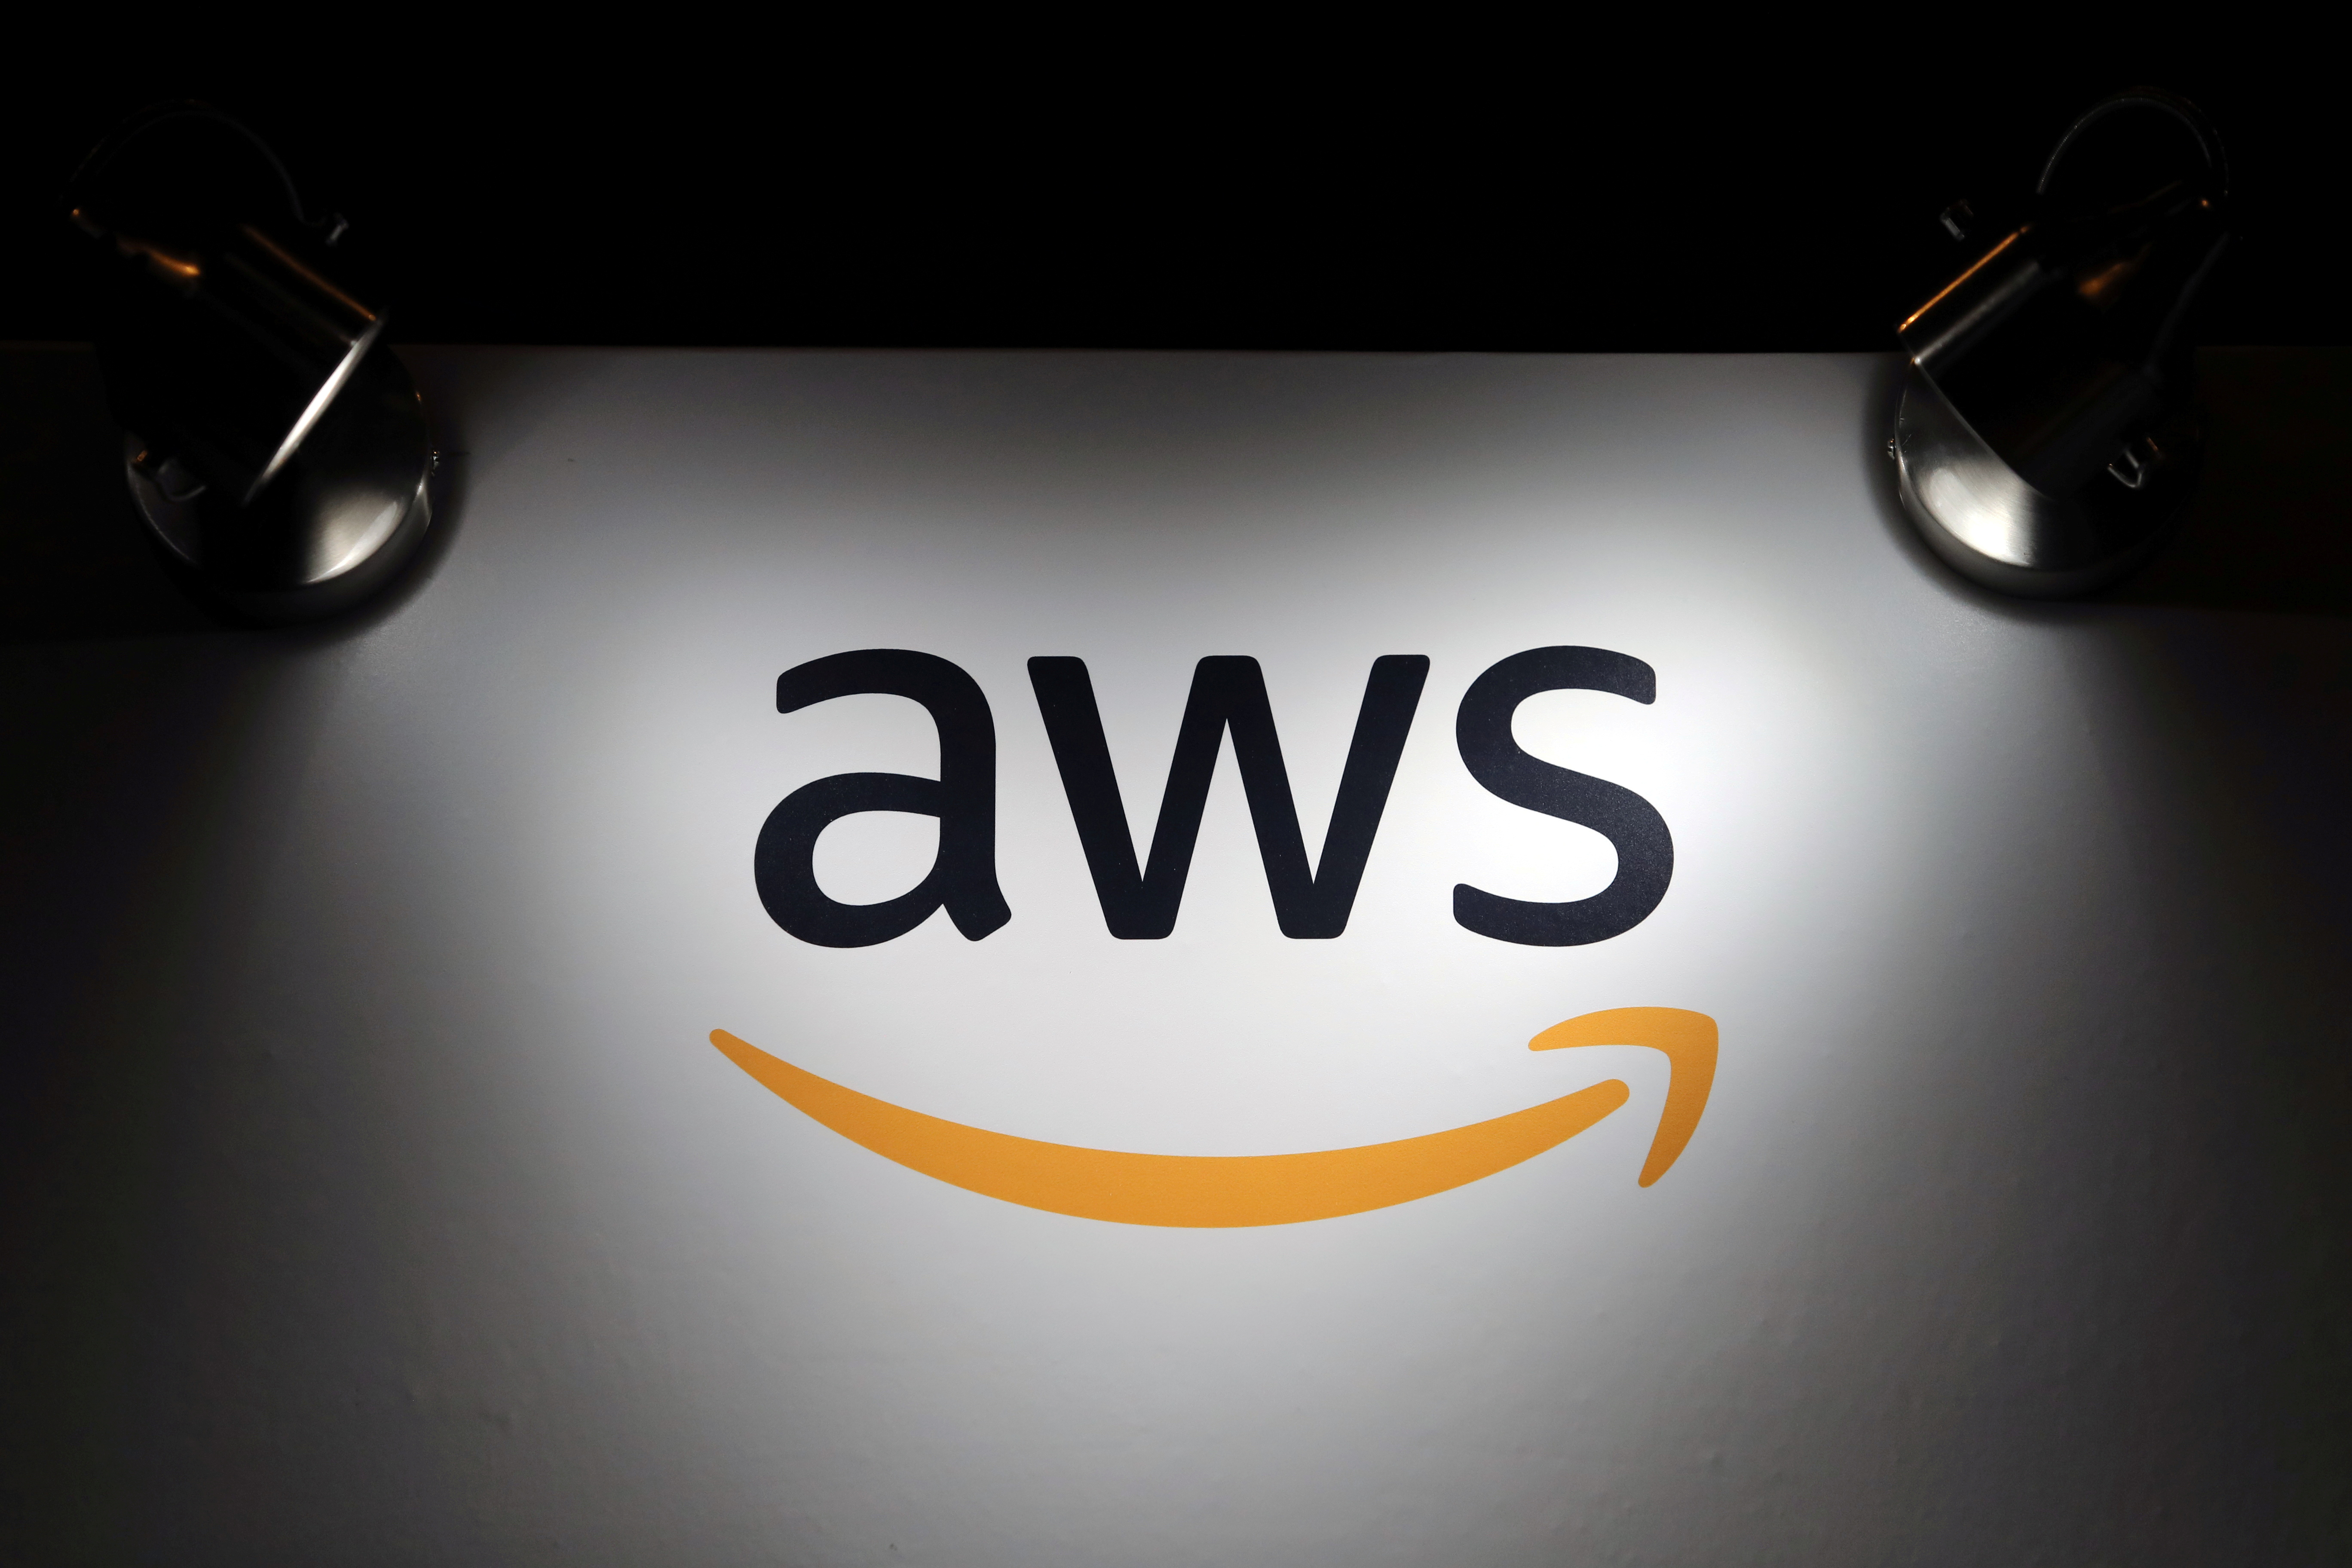 The logo of Amazon Web Services (AWS) is seen during the 4th annual America Digital Latin American Congress of Business and Technology in Santiago, Chile, September 5, 2018. REUTERS/Ivan Alvarado